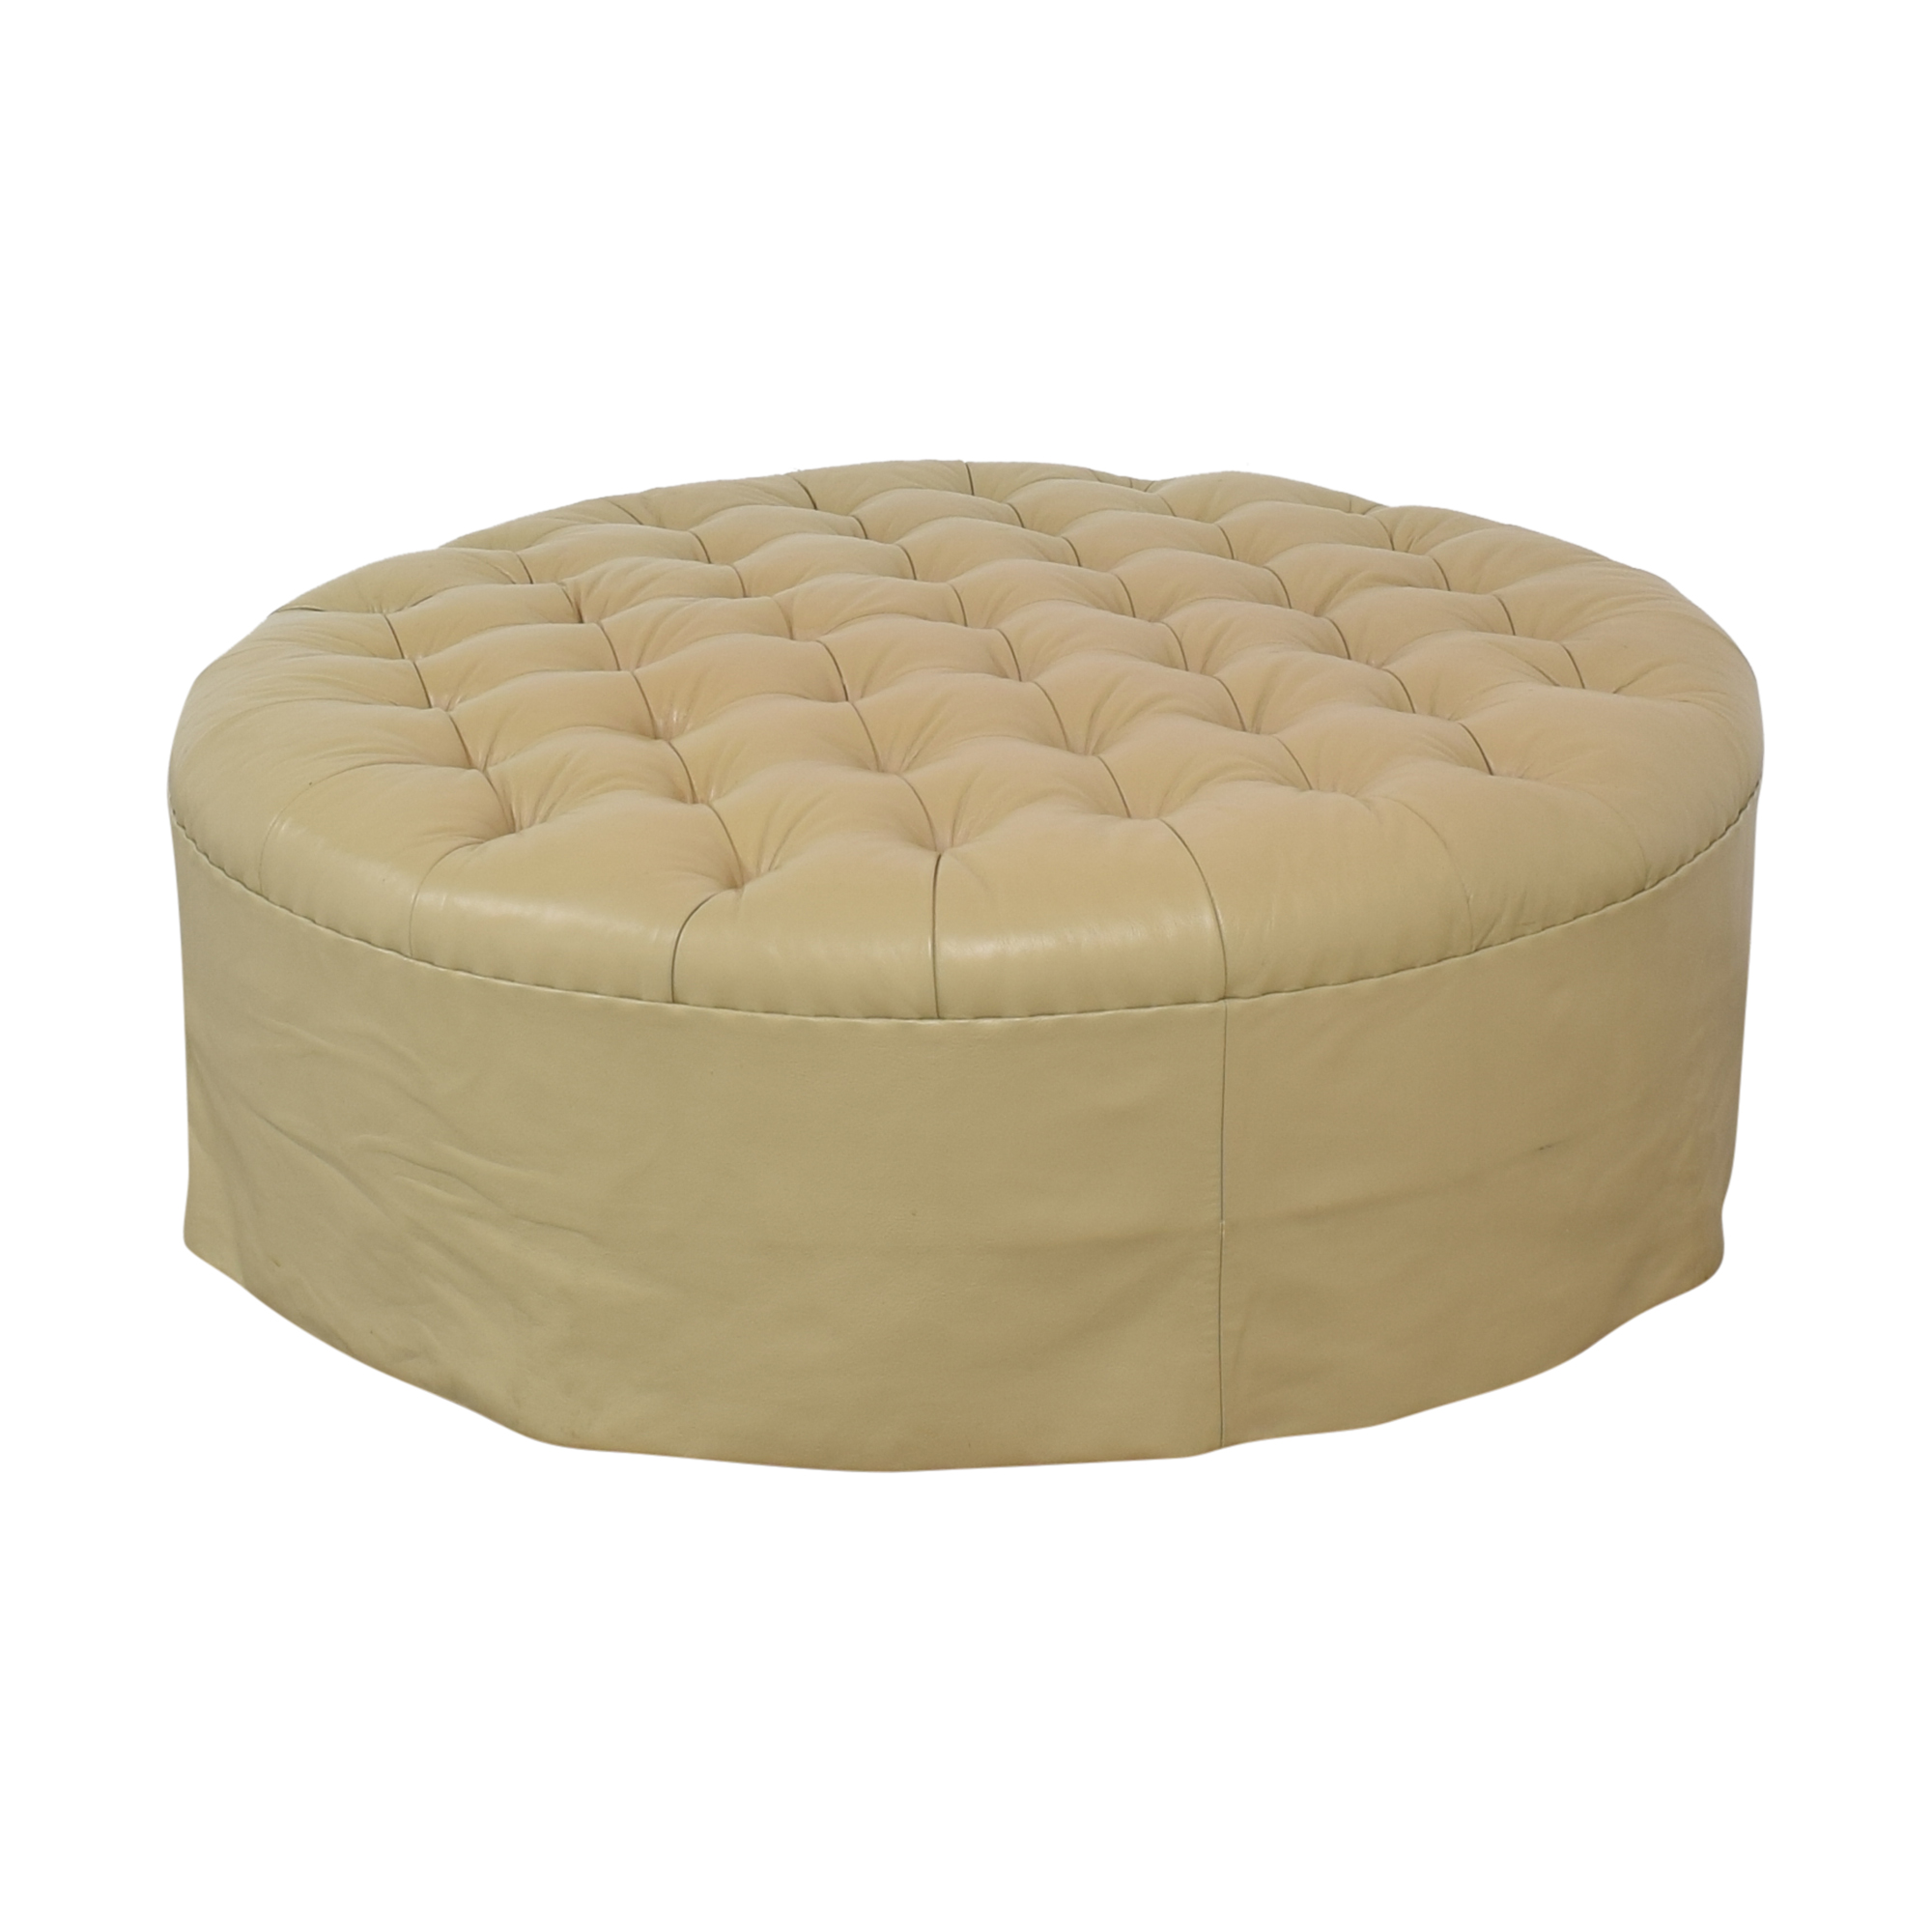 buy Vicente Wolf Round Tufted Ottoman Vicente Wolf Ottomans